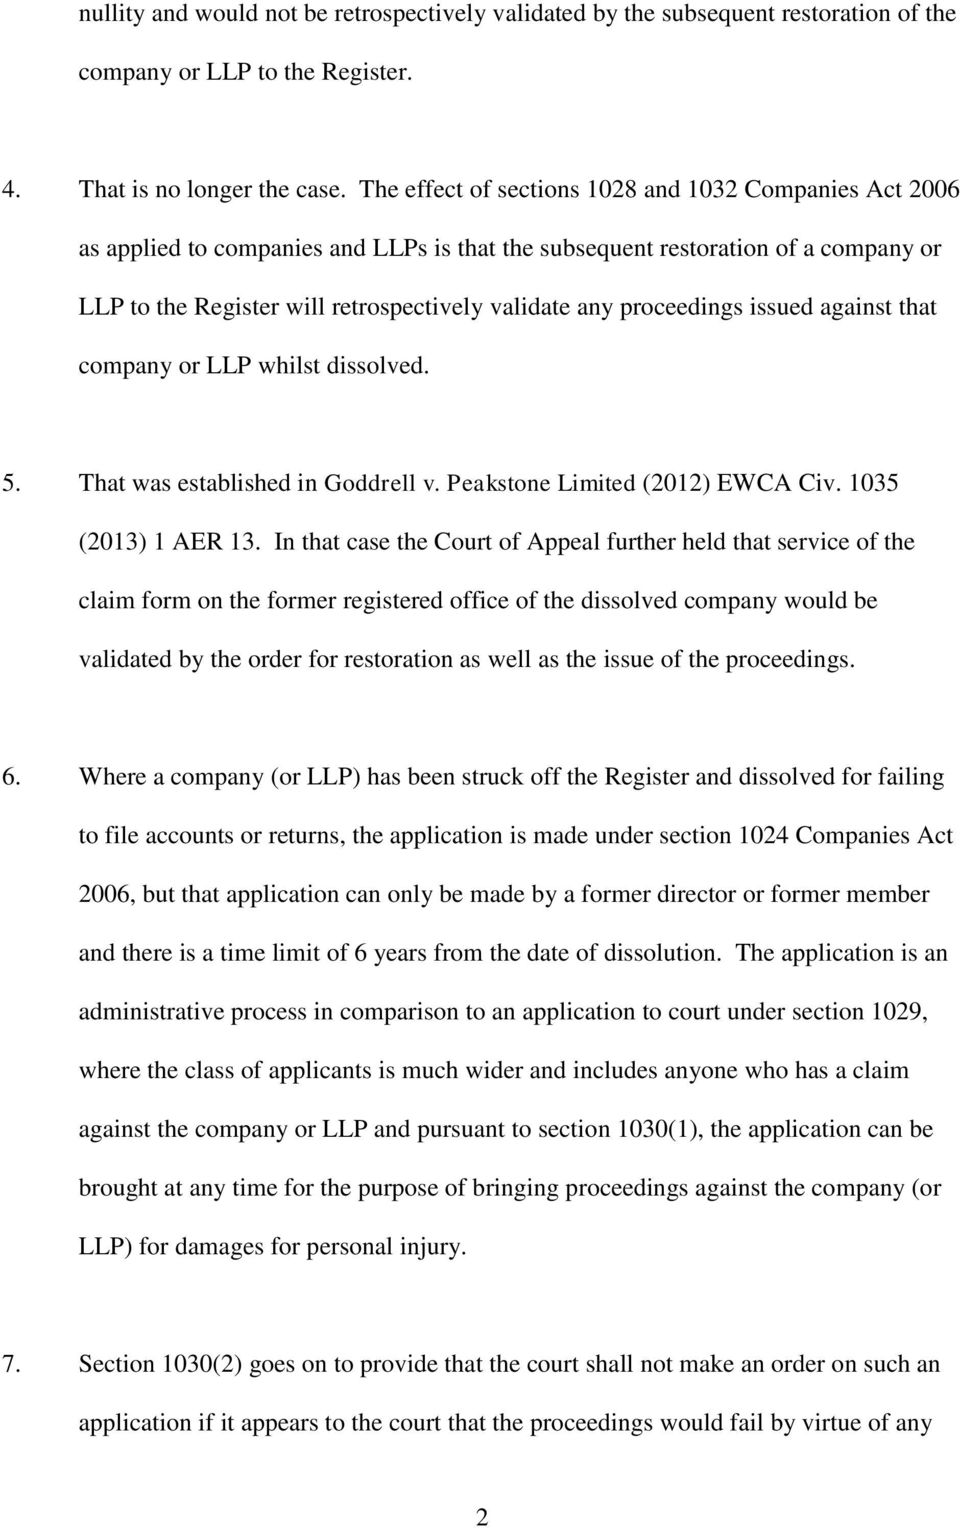 proceedings issued against that company or LLP whilst dissolved. 5. That was established in Goddrell v. Peakstone Limited (2012) EWCA Civ. 1035 (2013) 1 AER 13.